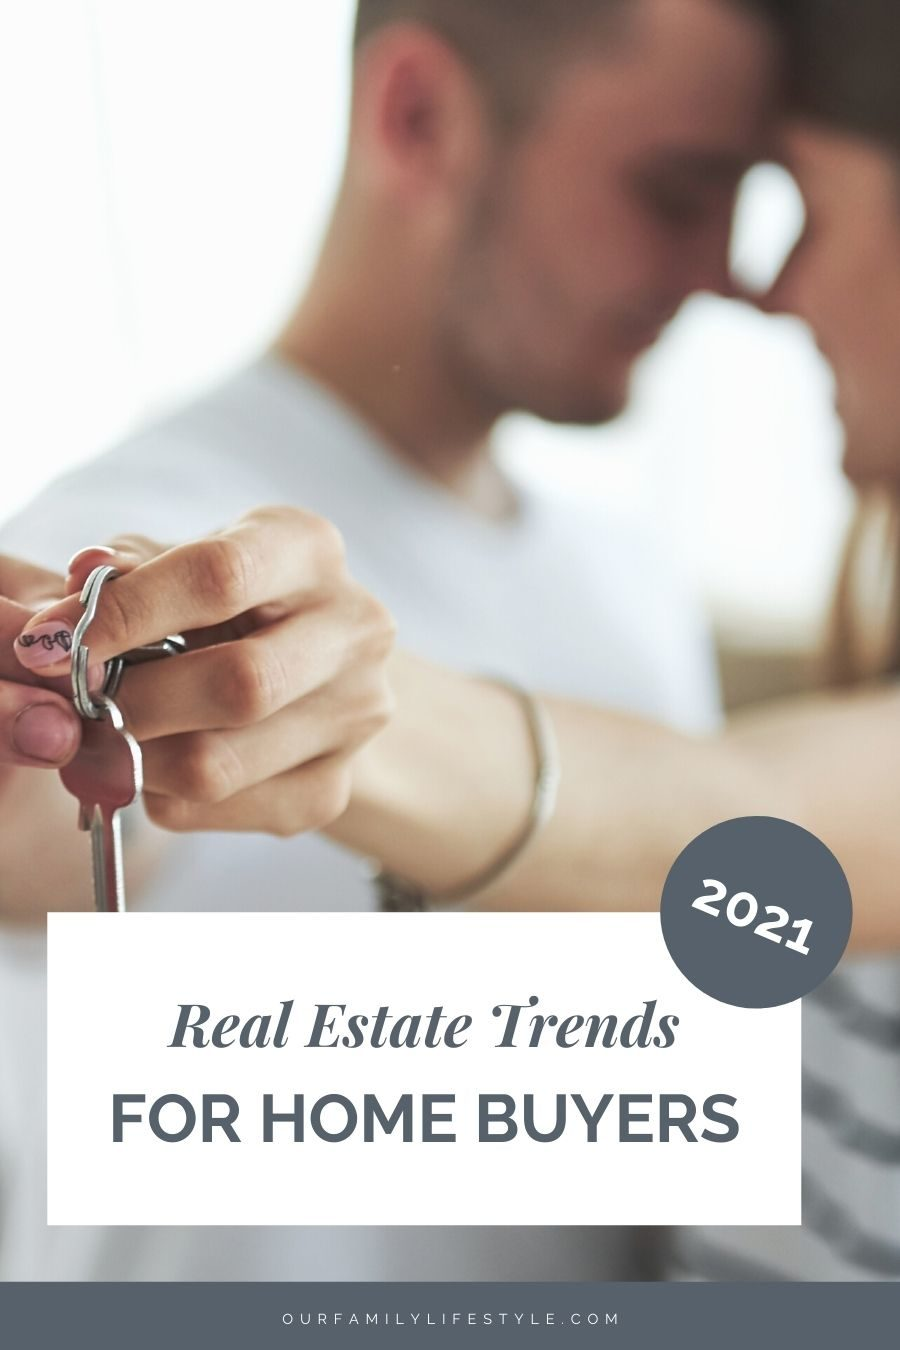 Real Estate Trends for Home Buyers in 2021